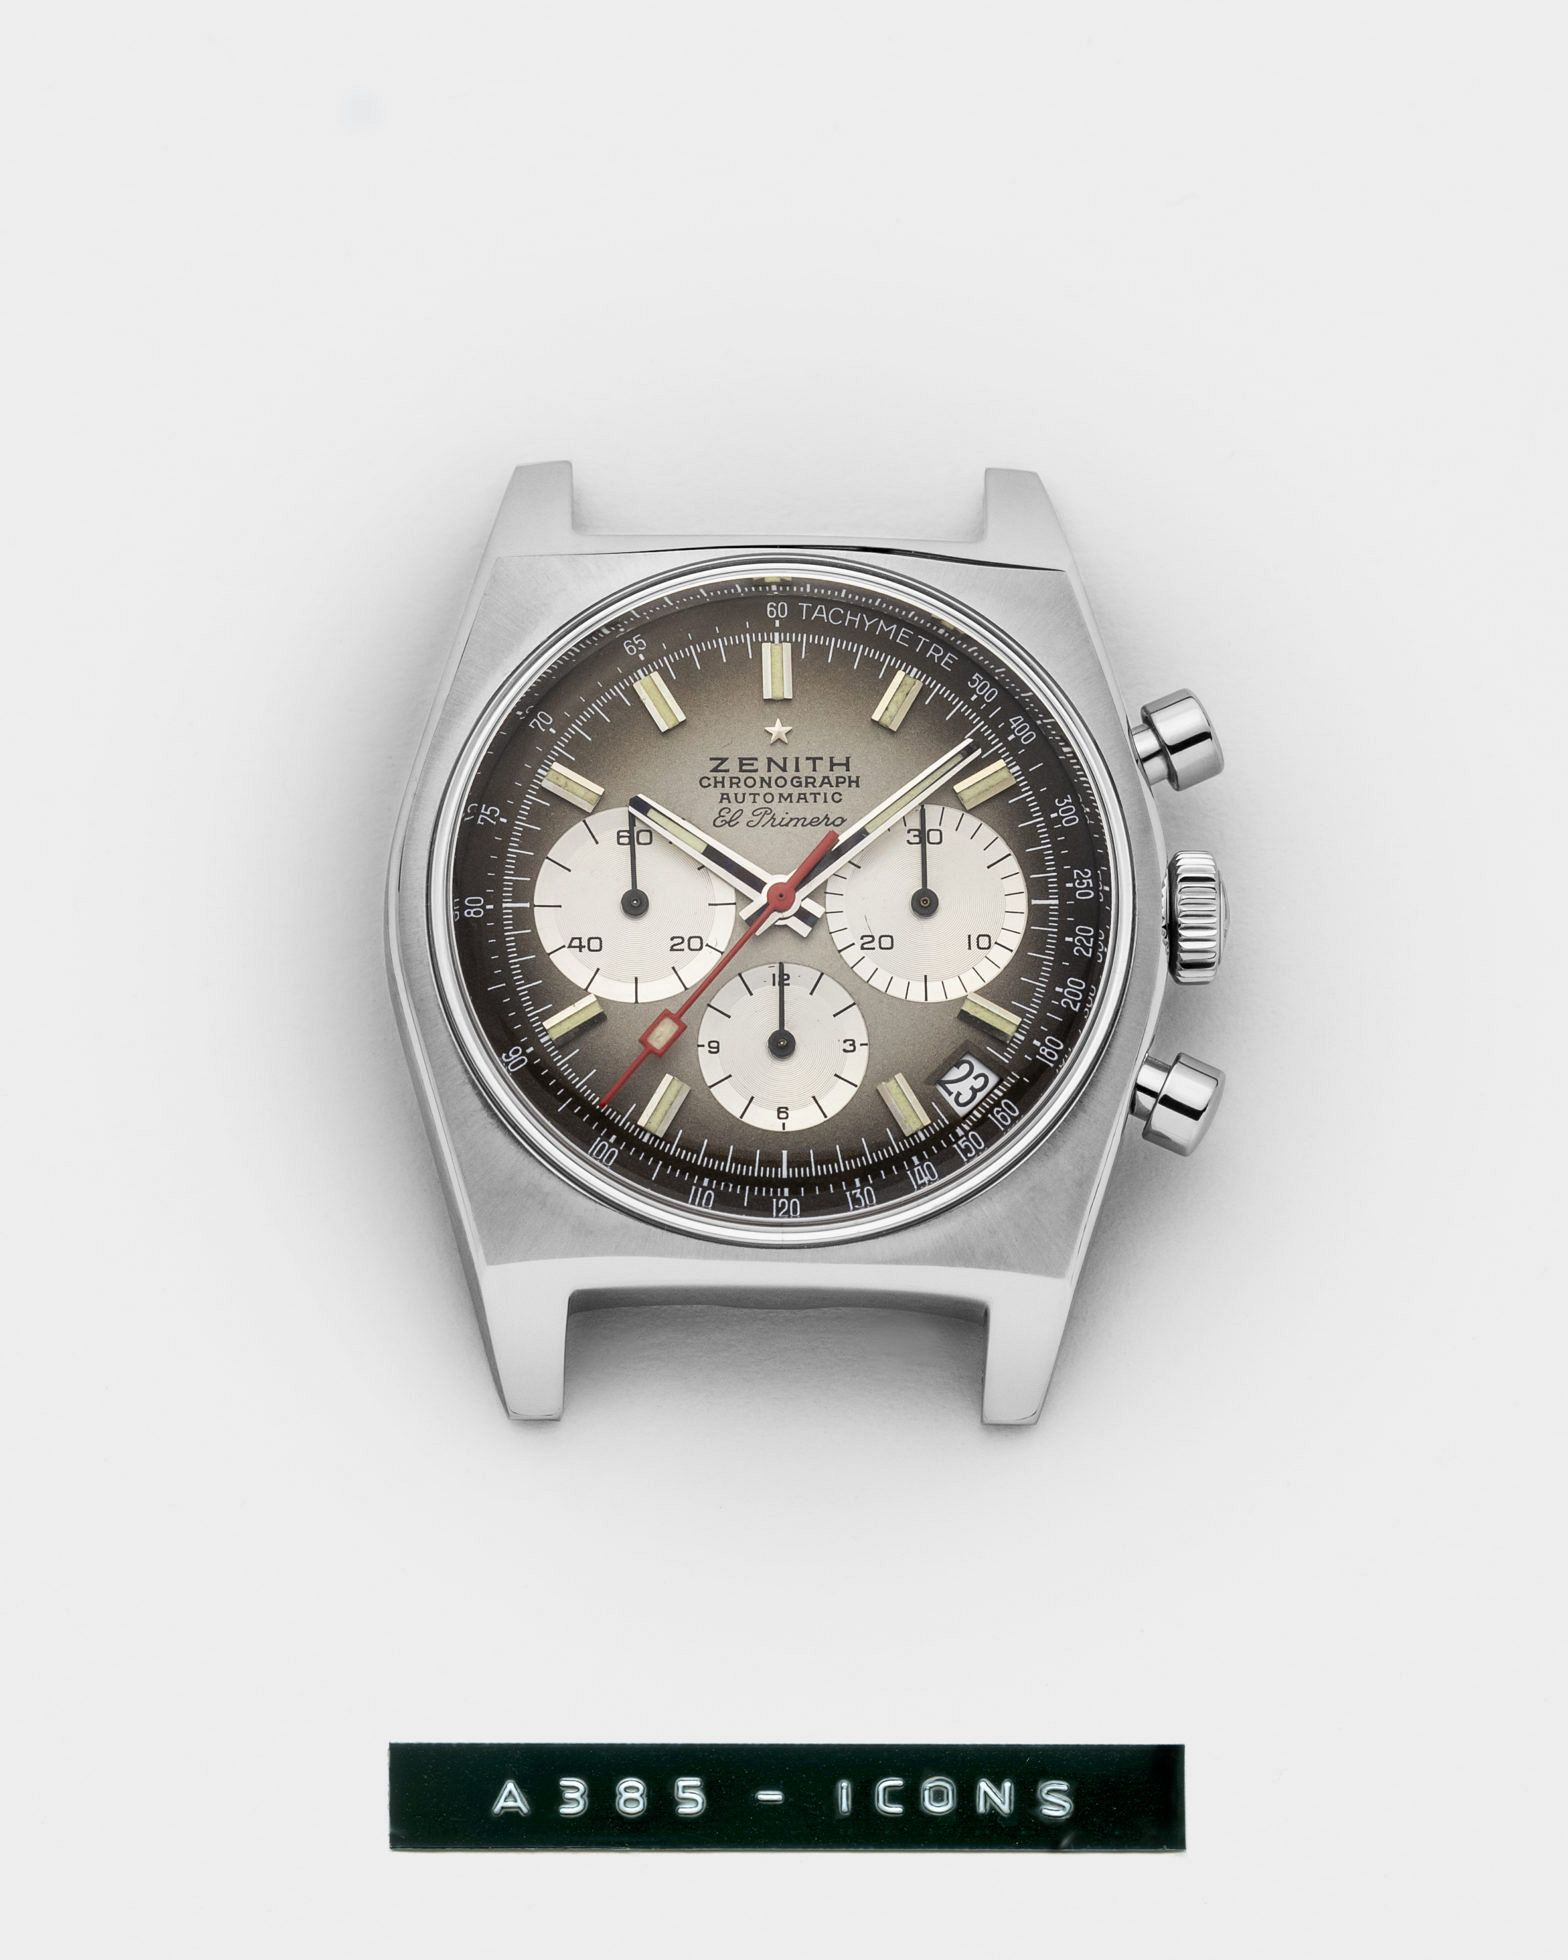 The Zenith Icons collection is a thrilling prospect for vintage fans